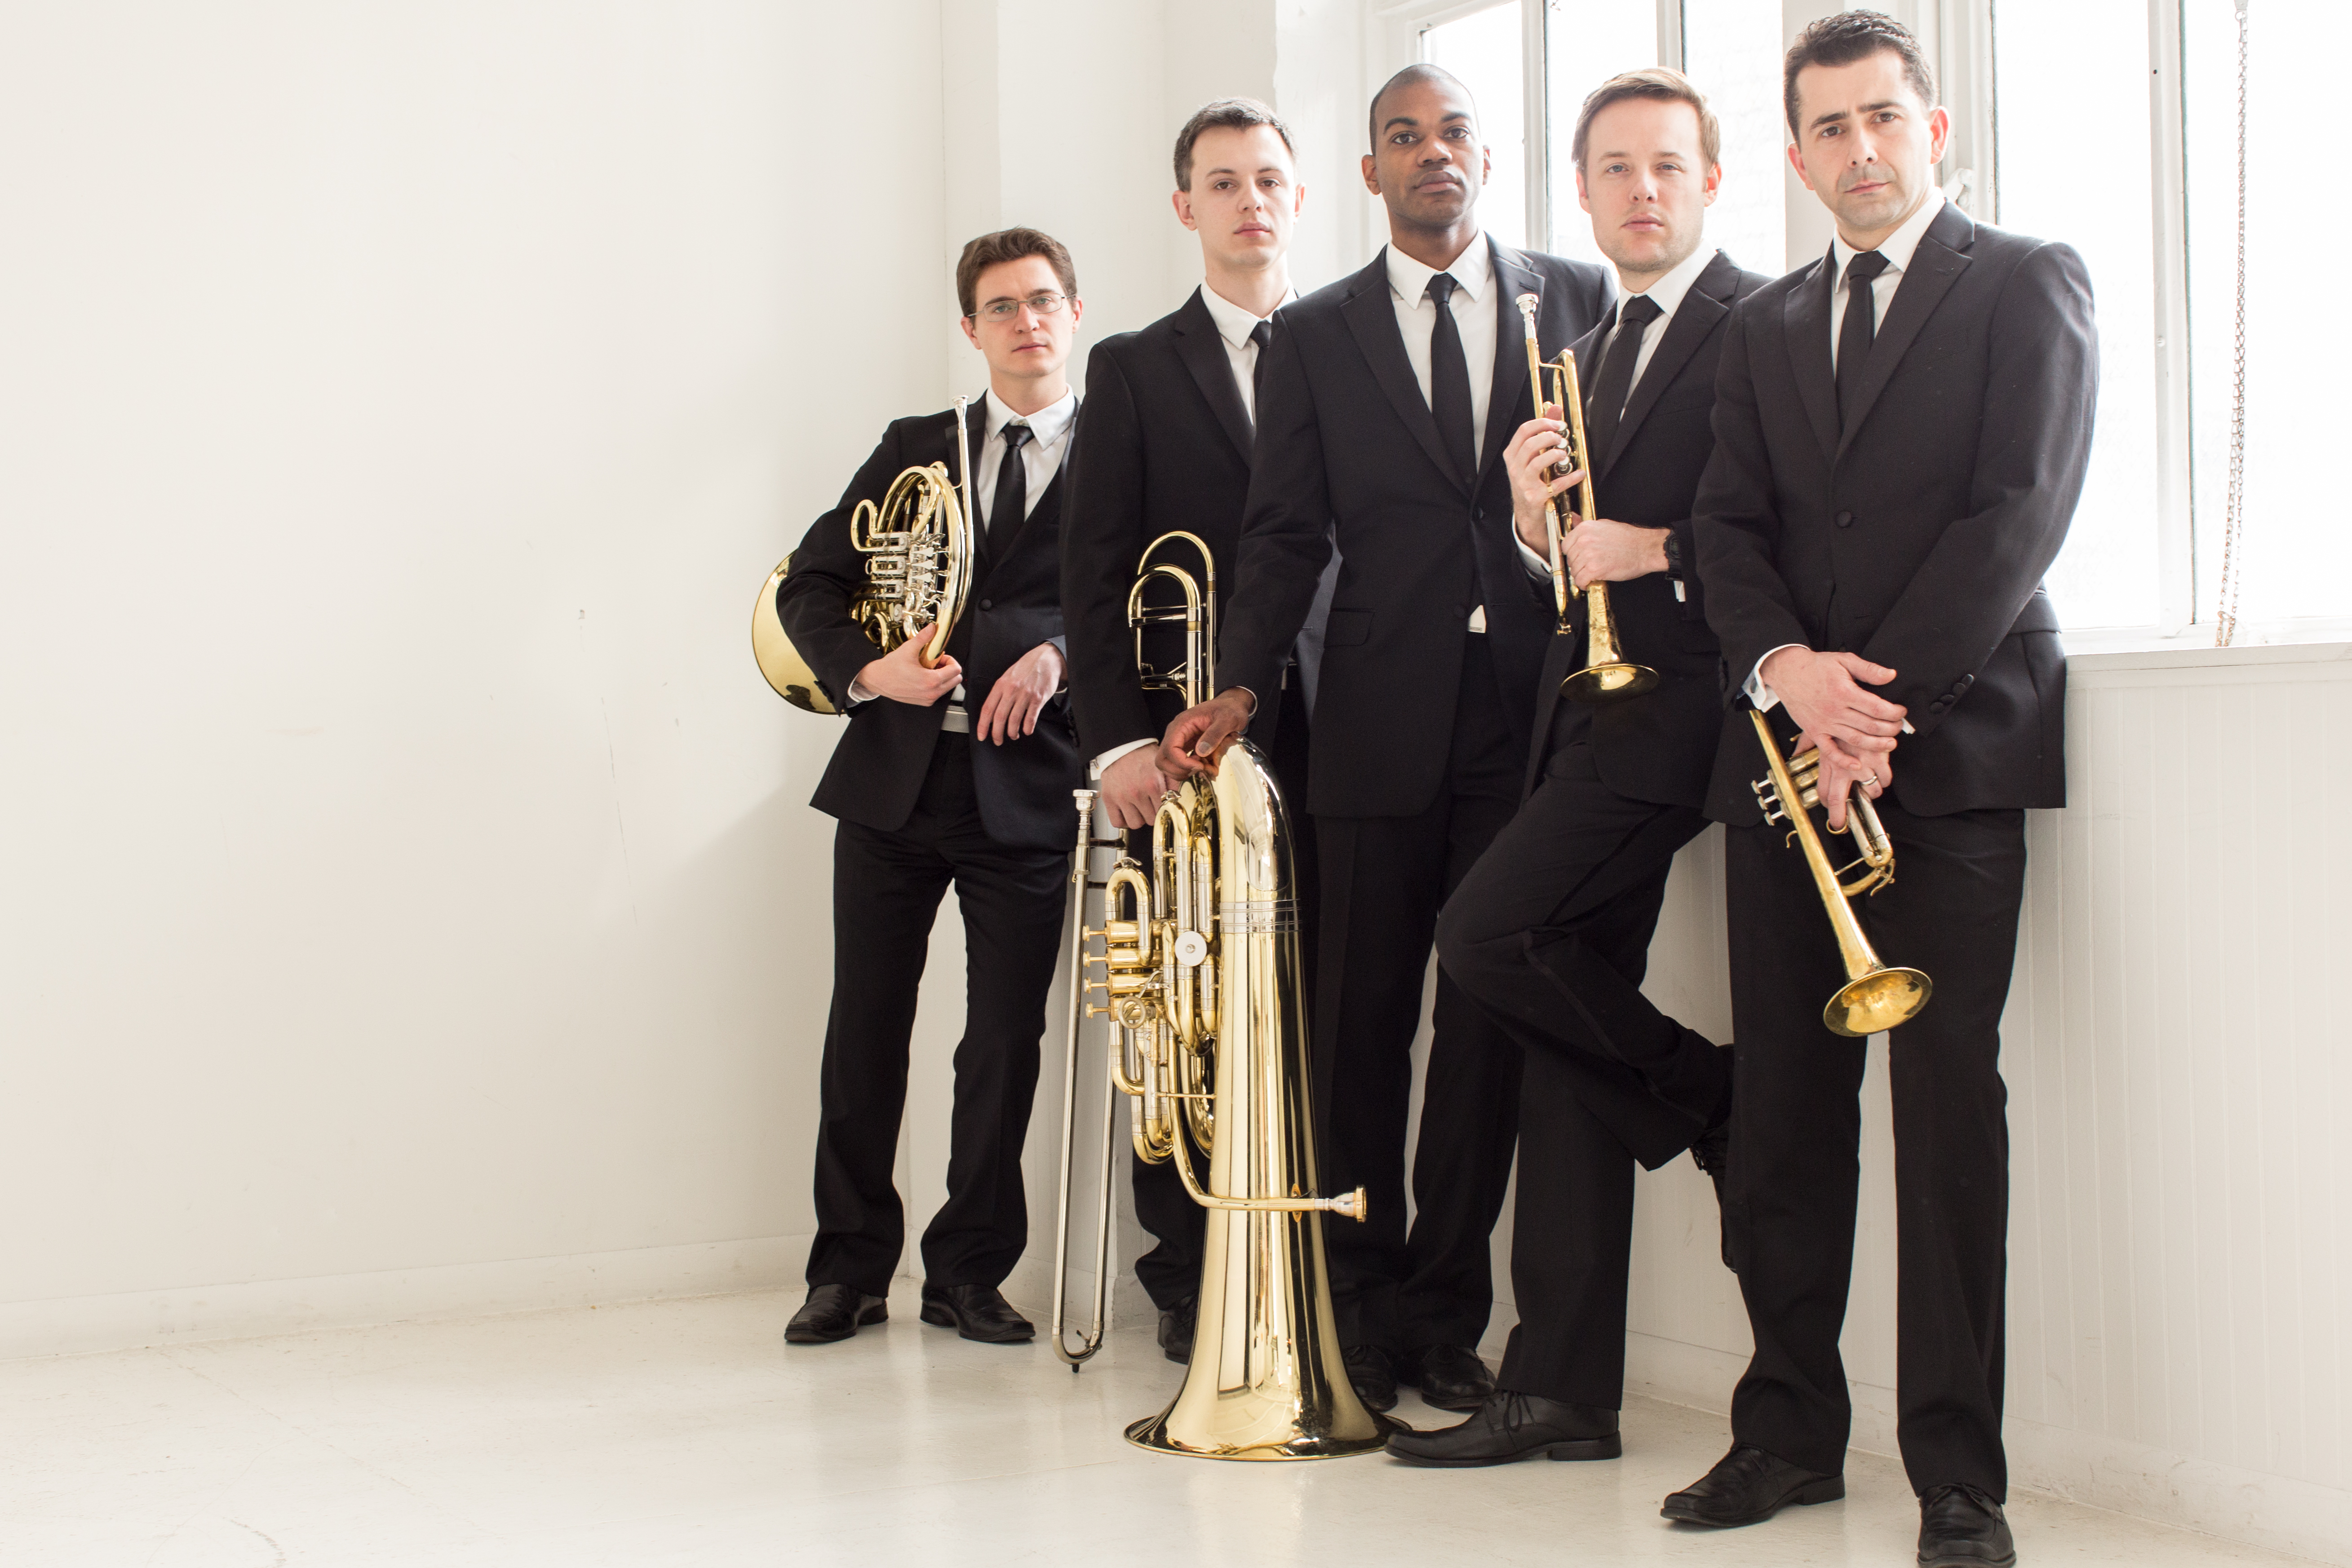 Axiom Brass Ensemble